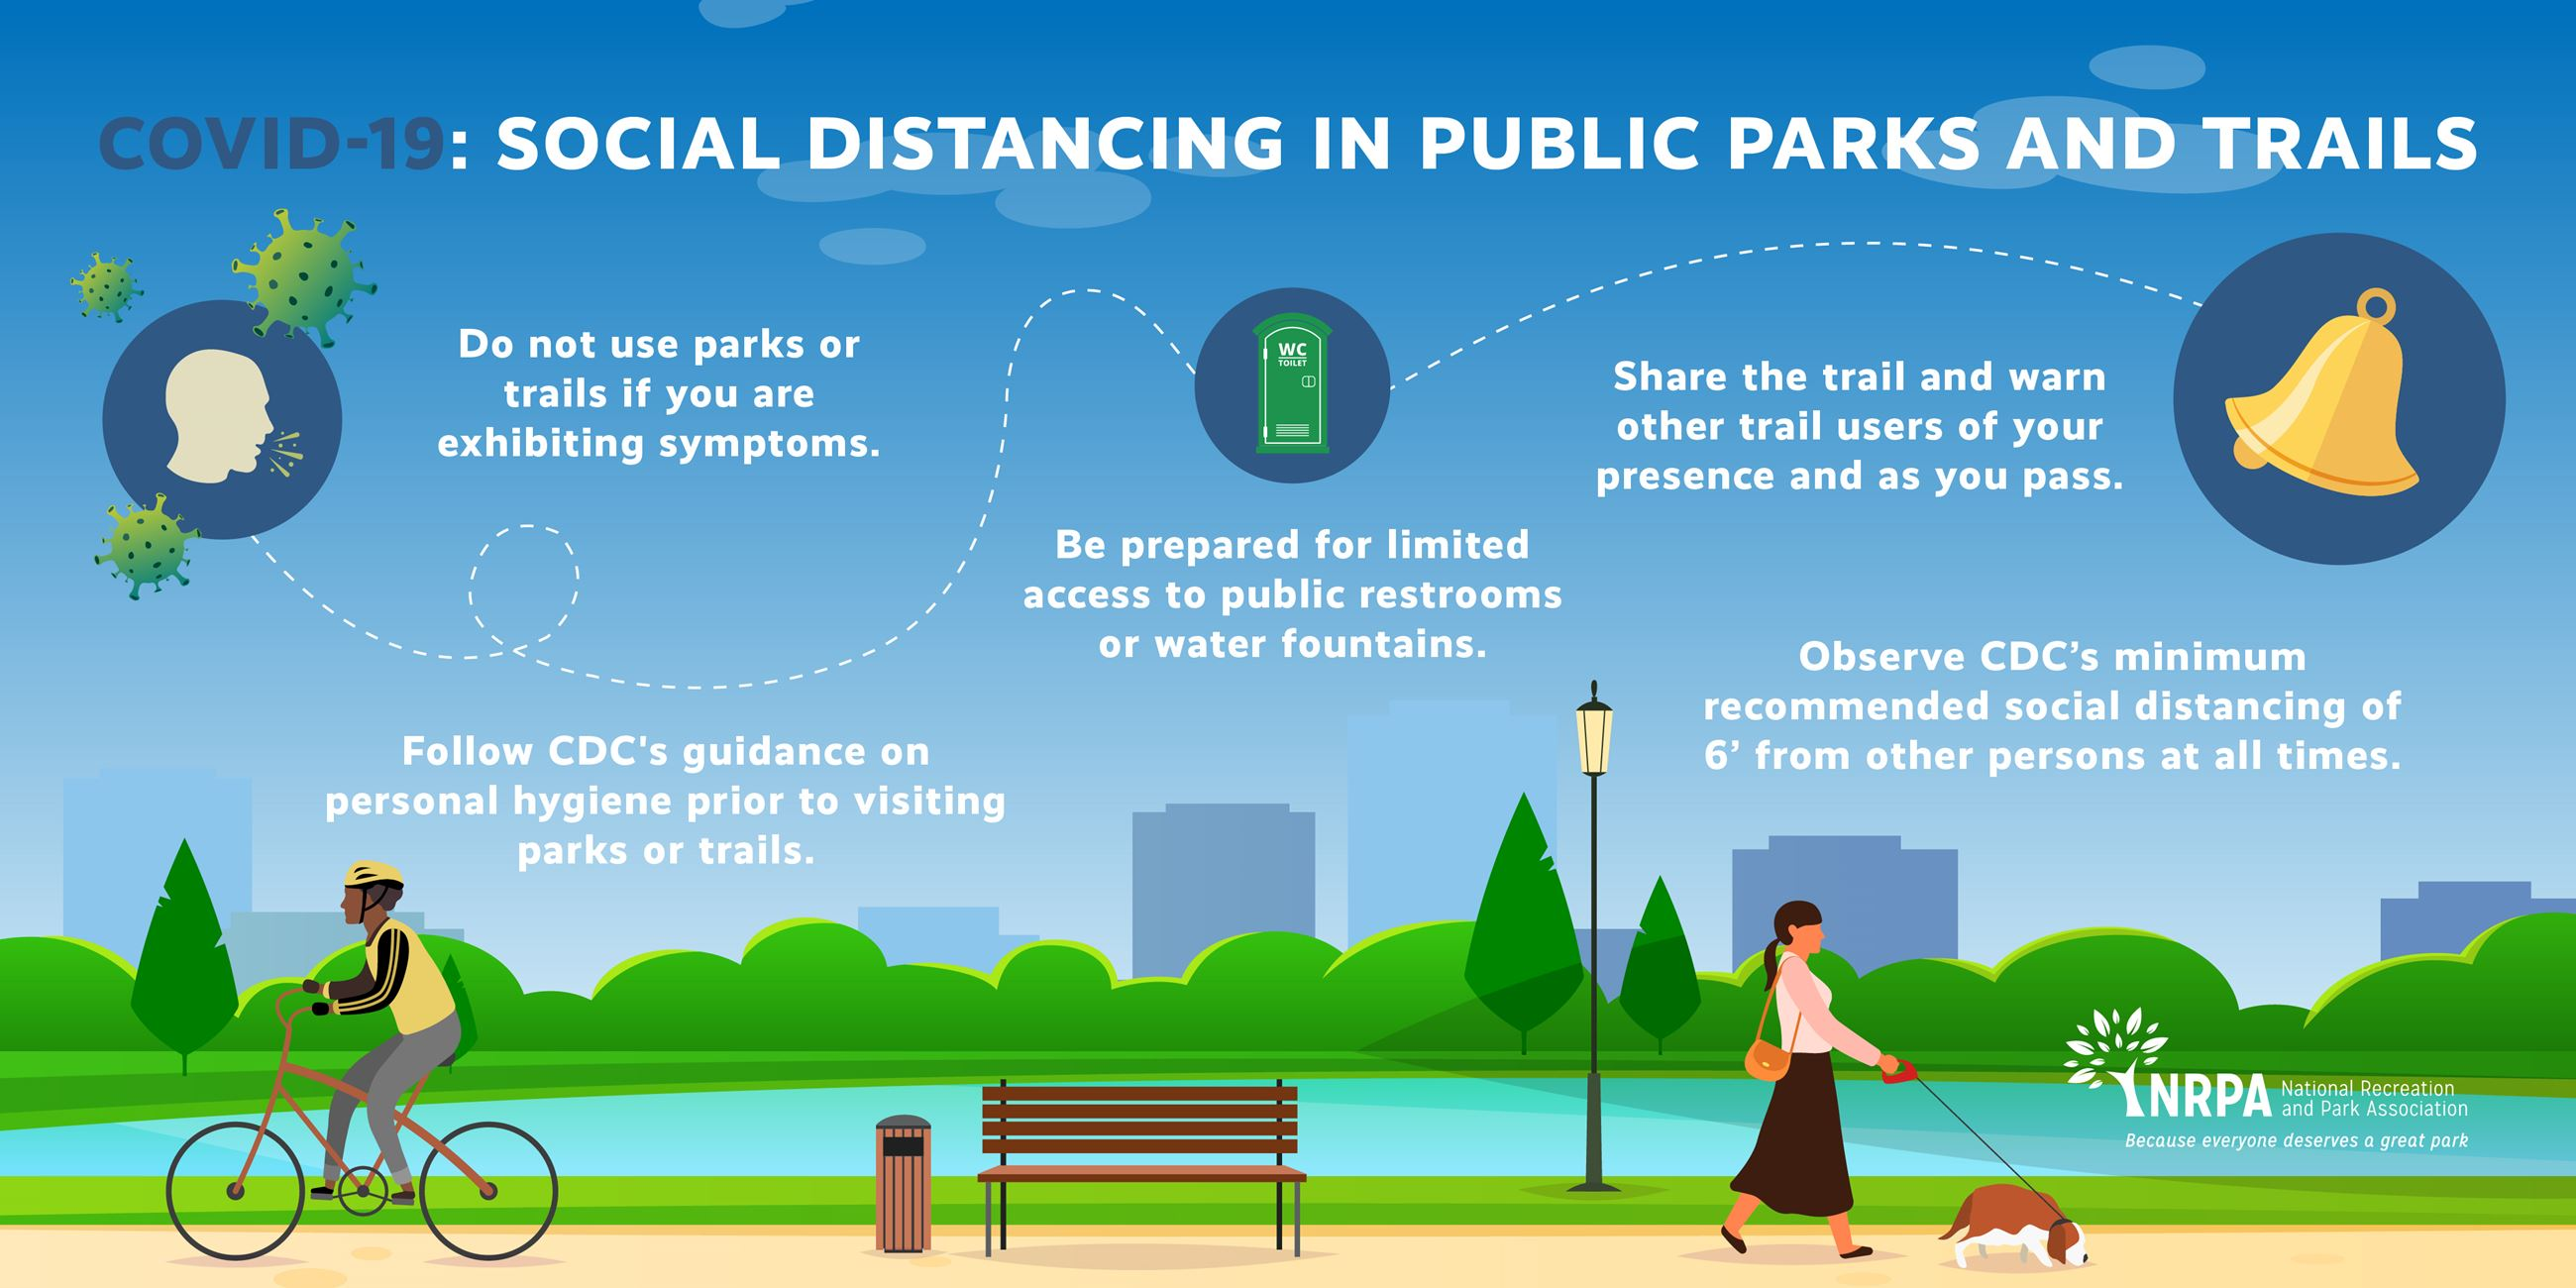 NRPA social distancing parks graphic